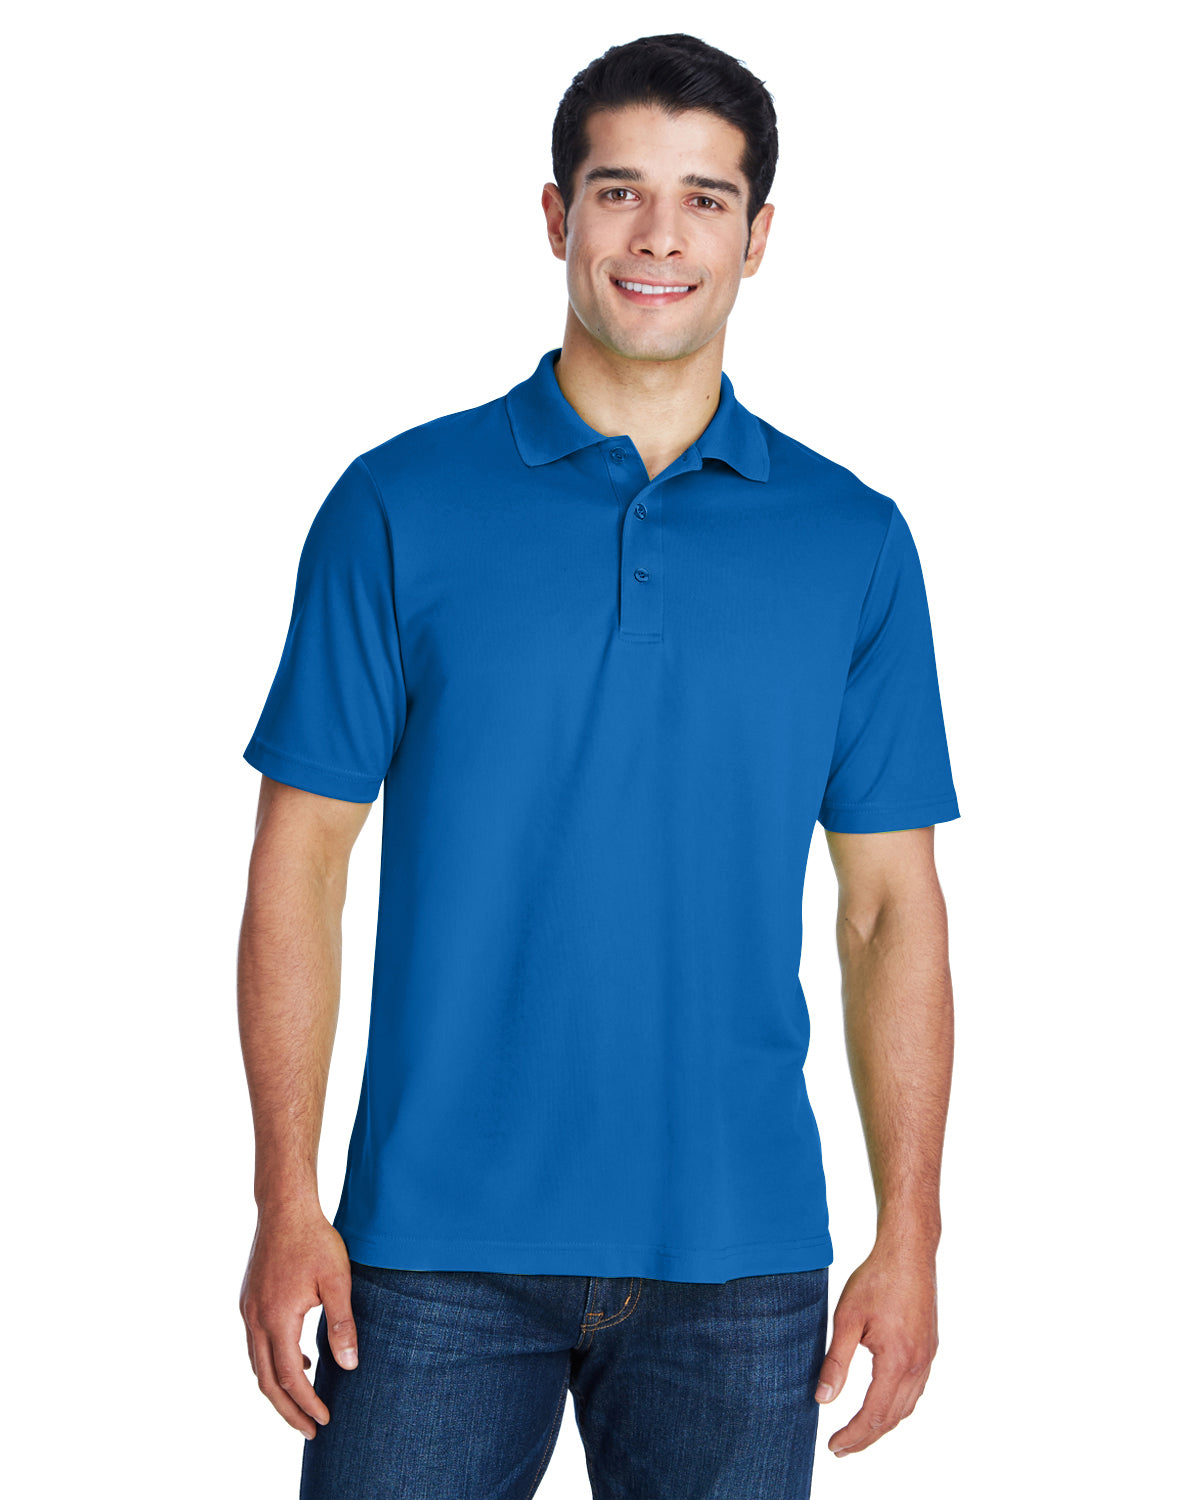 Ash City Peak Performance Polo 88181